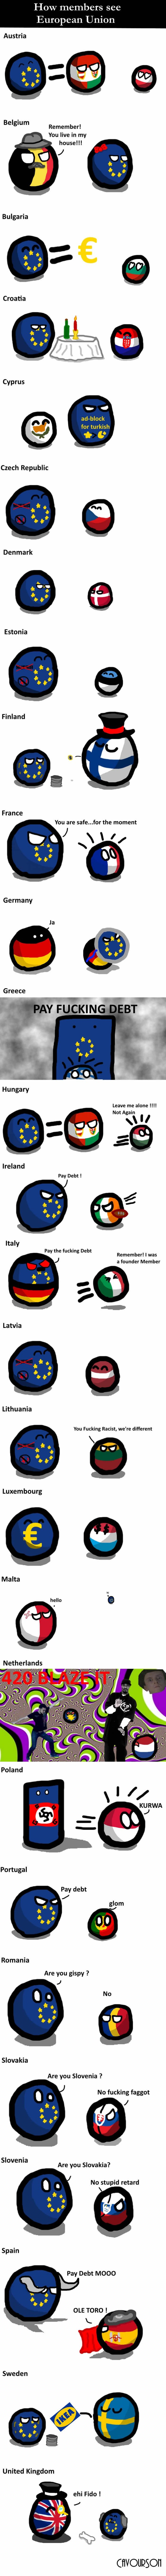 The European Union and its members<<< lost if at Greece